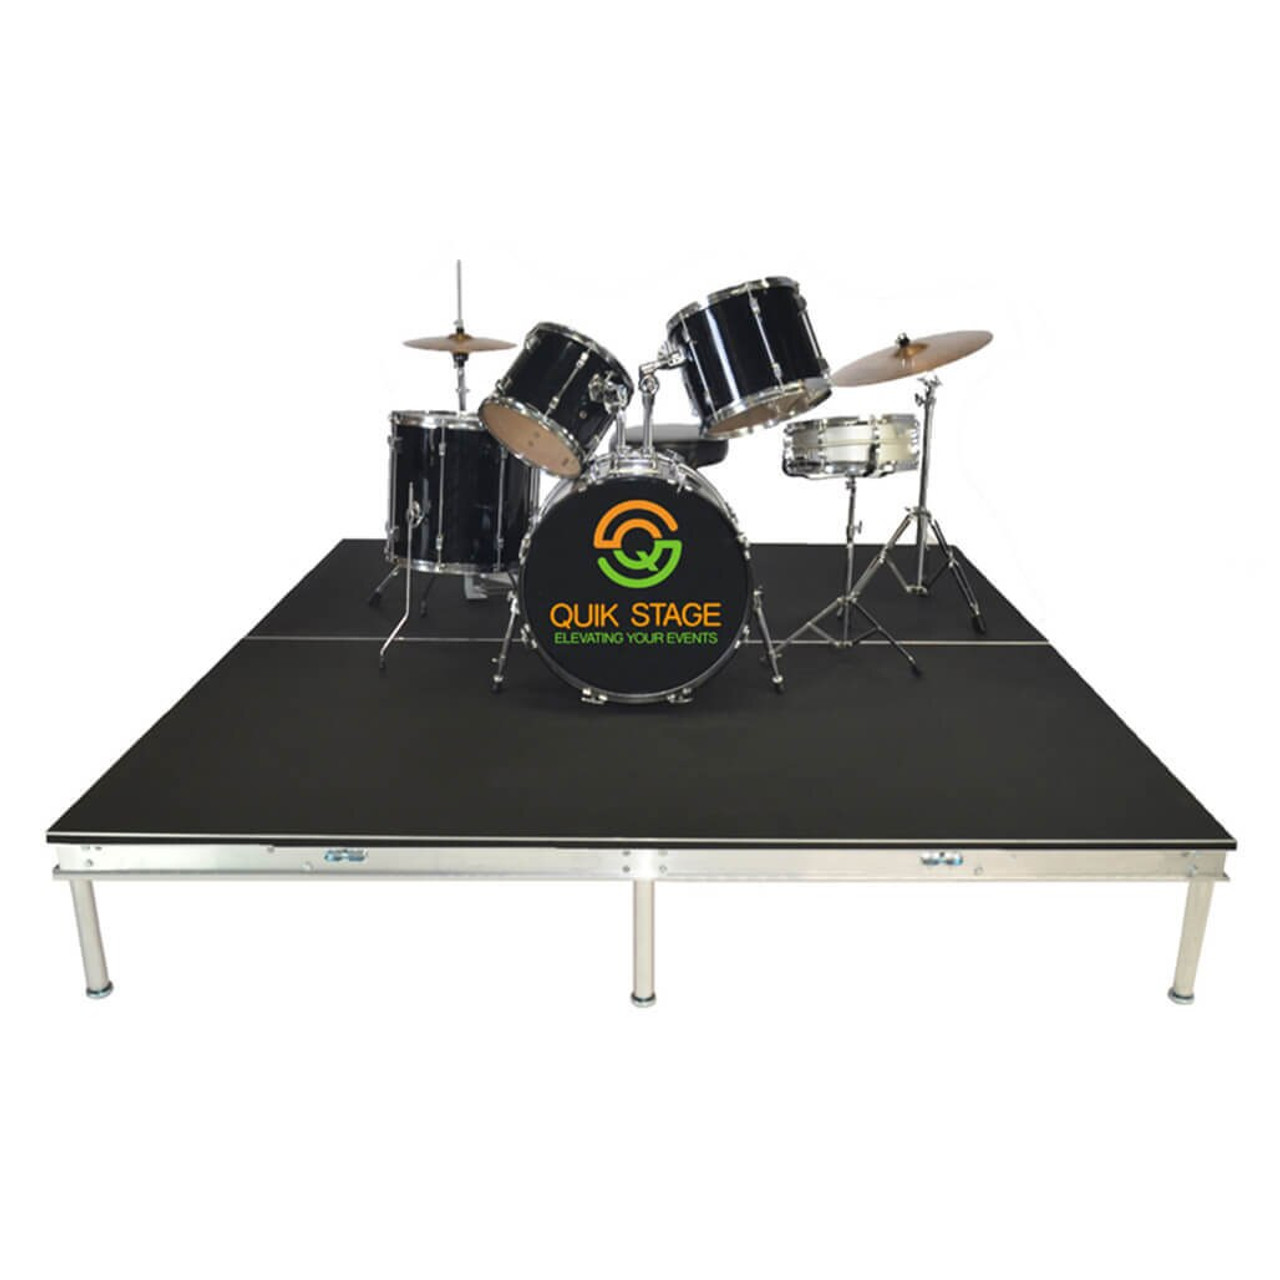 Quik Stage 4' x 4' High Portable Stage Package with Black Polyvinyl Non-Skid Surface. Additional Heights and Surfaces Available - Drum Riser without skirting